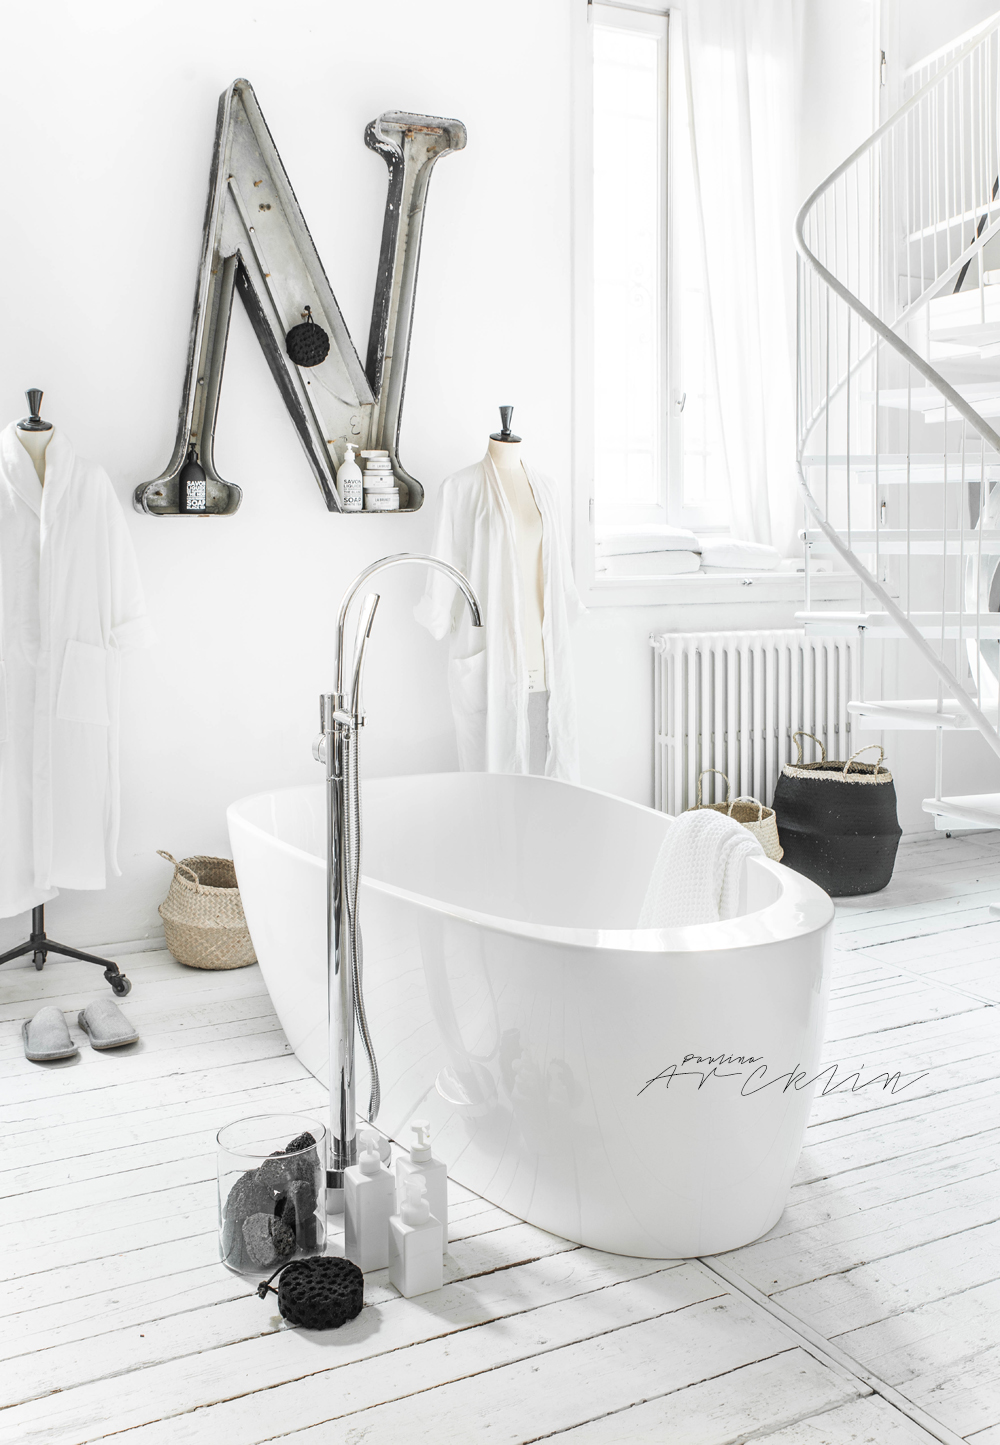 A SNEAK PEEK - 1 SPACE 7 BATHTUBS STYLE | PAULINA ARCKLIN ...